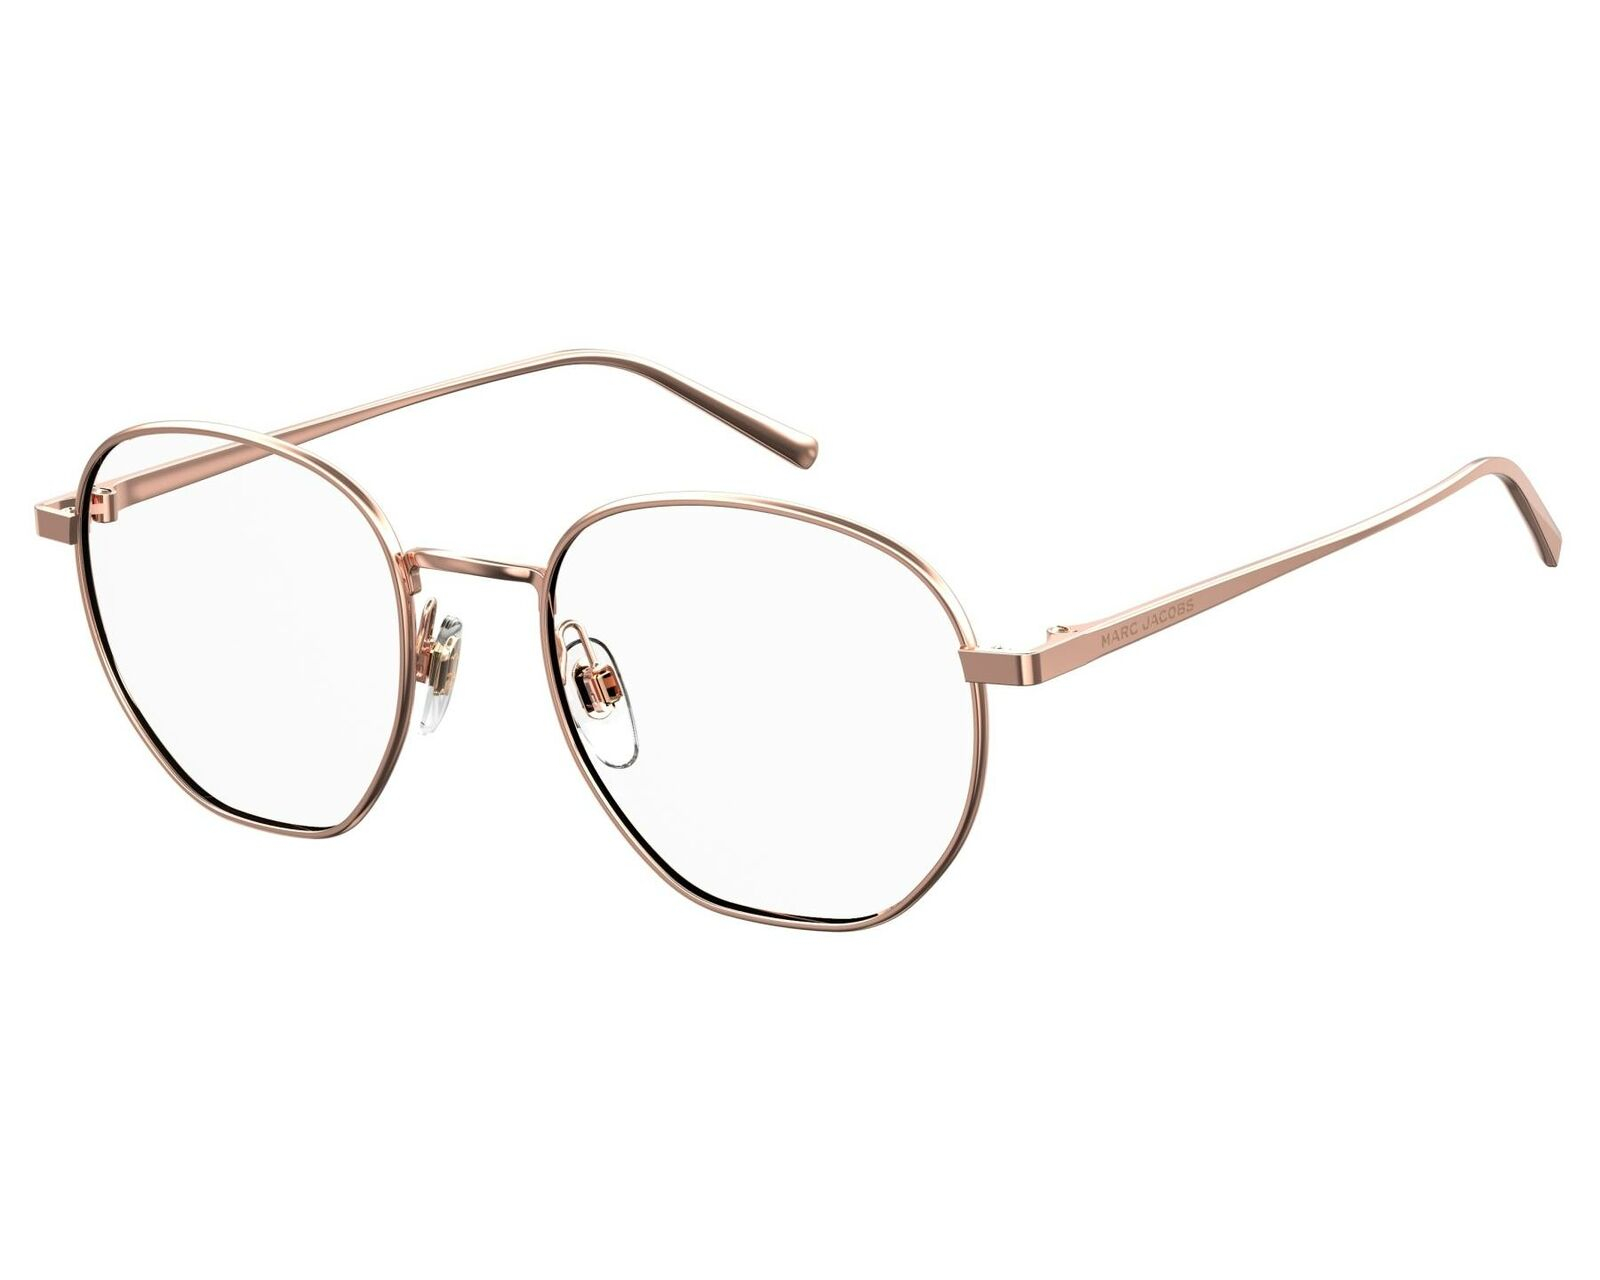 Marc Jacobs - Occhiale da Vista Donna, MARC 434, Rose Gold  DDB/19  C51